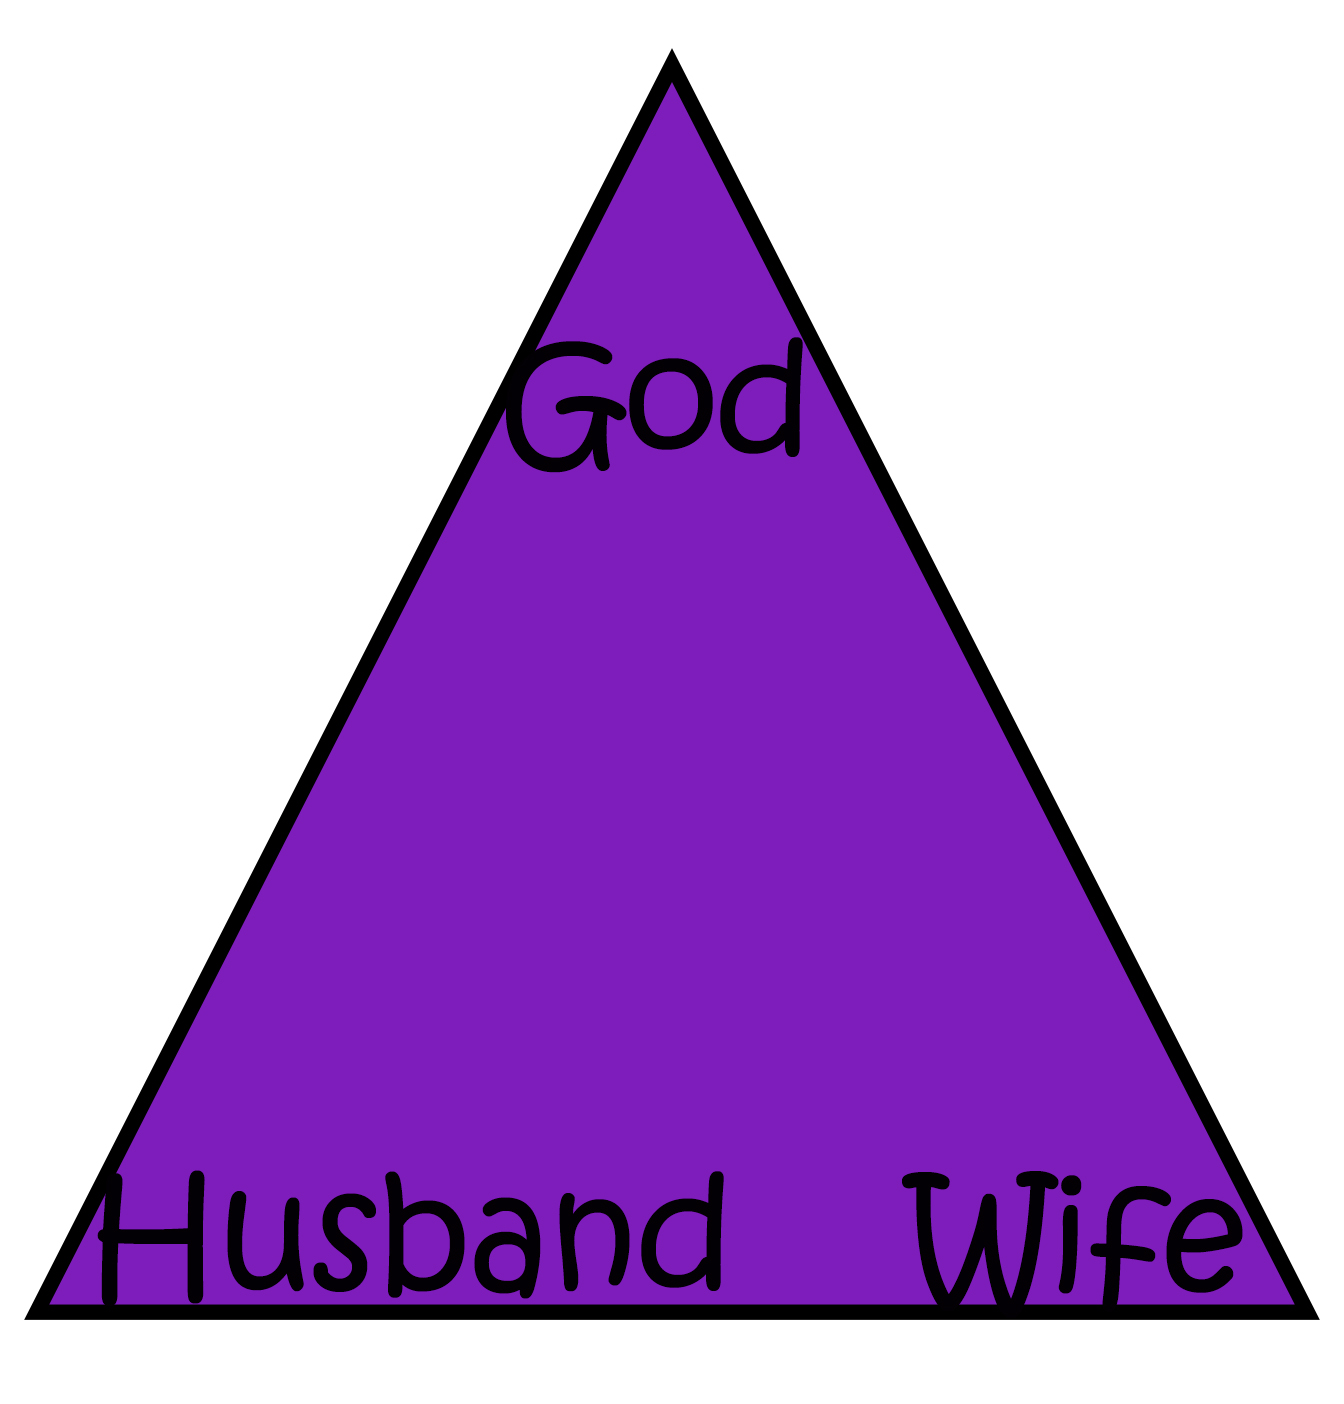 Biblical Marriage with Mutual Respect